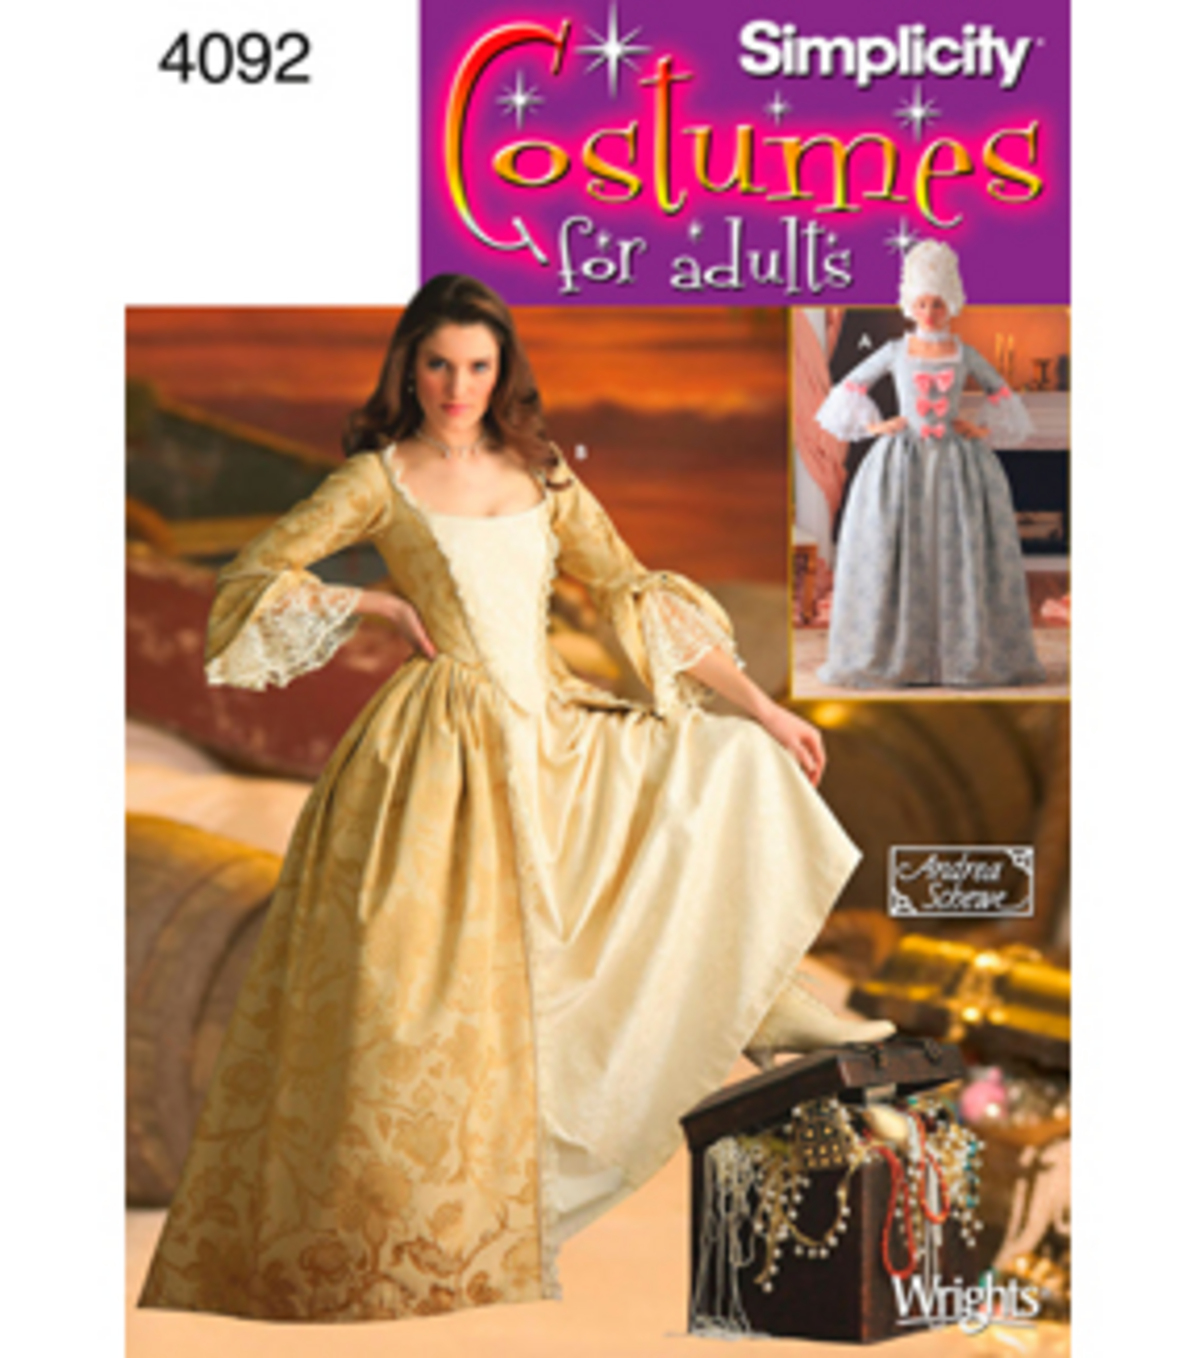 Simplicity Patterns Costumes Magnificent Decorating Design